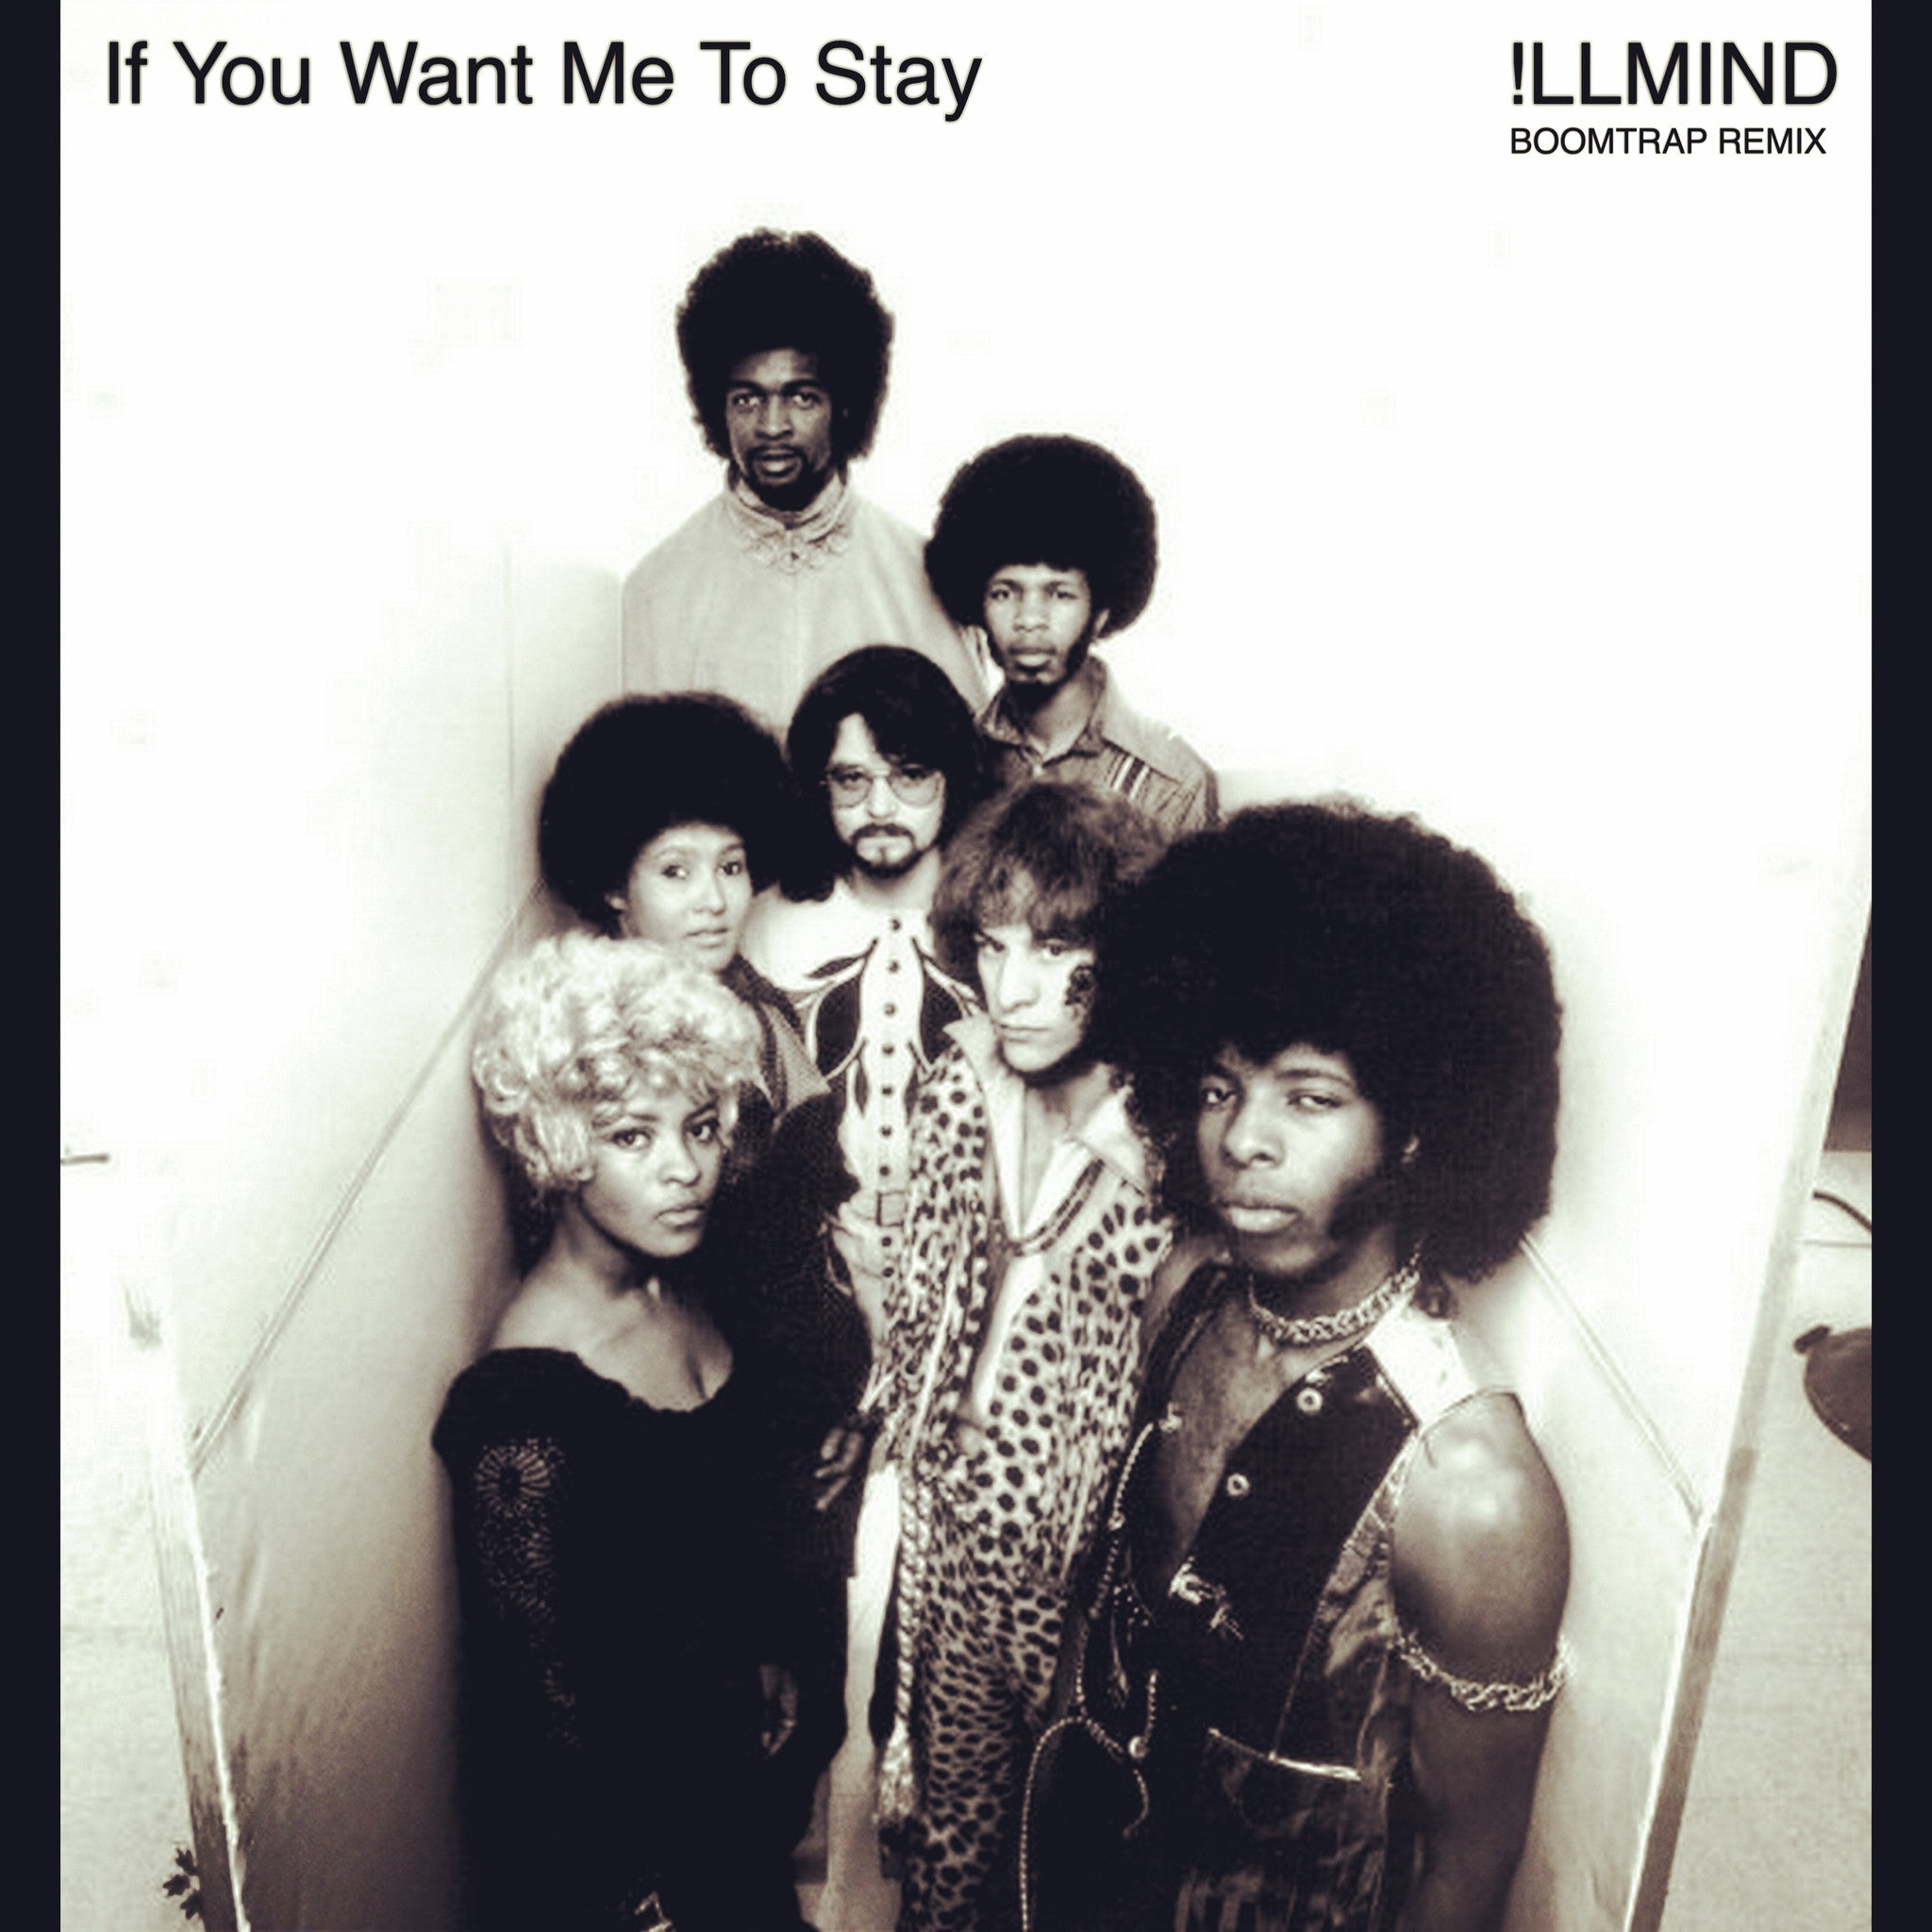 SINGLE - Sly & The Family Stone - If You Want Me To Stay (!llmind BoomTrap Remix)